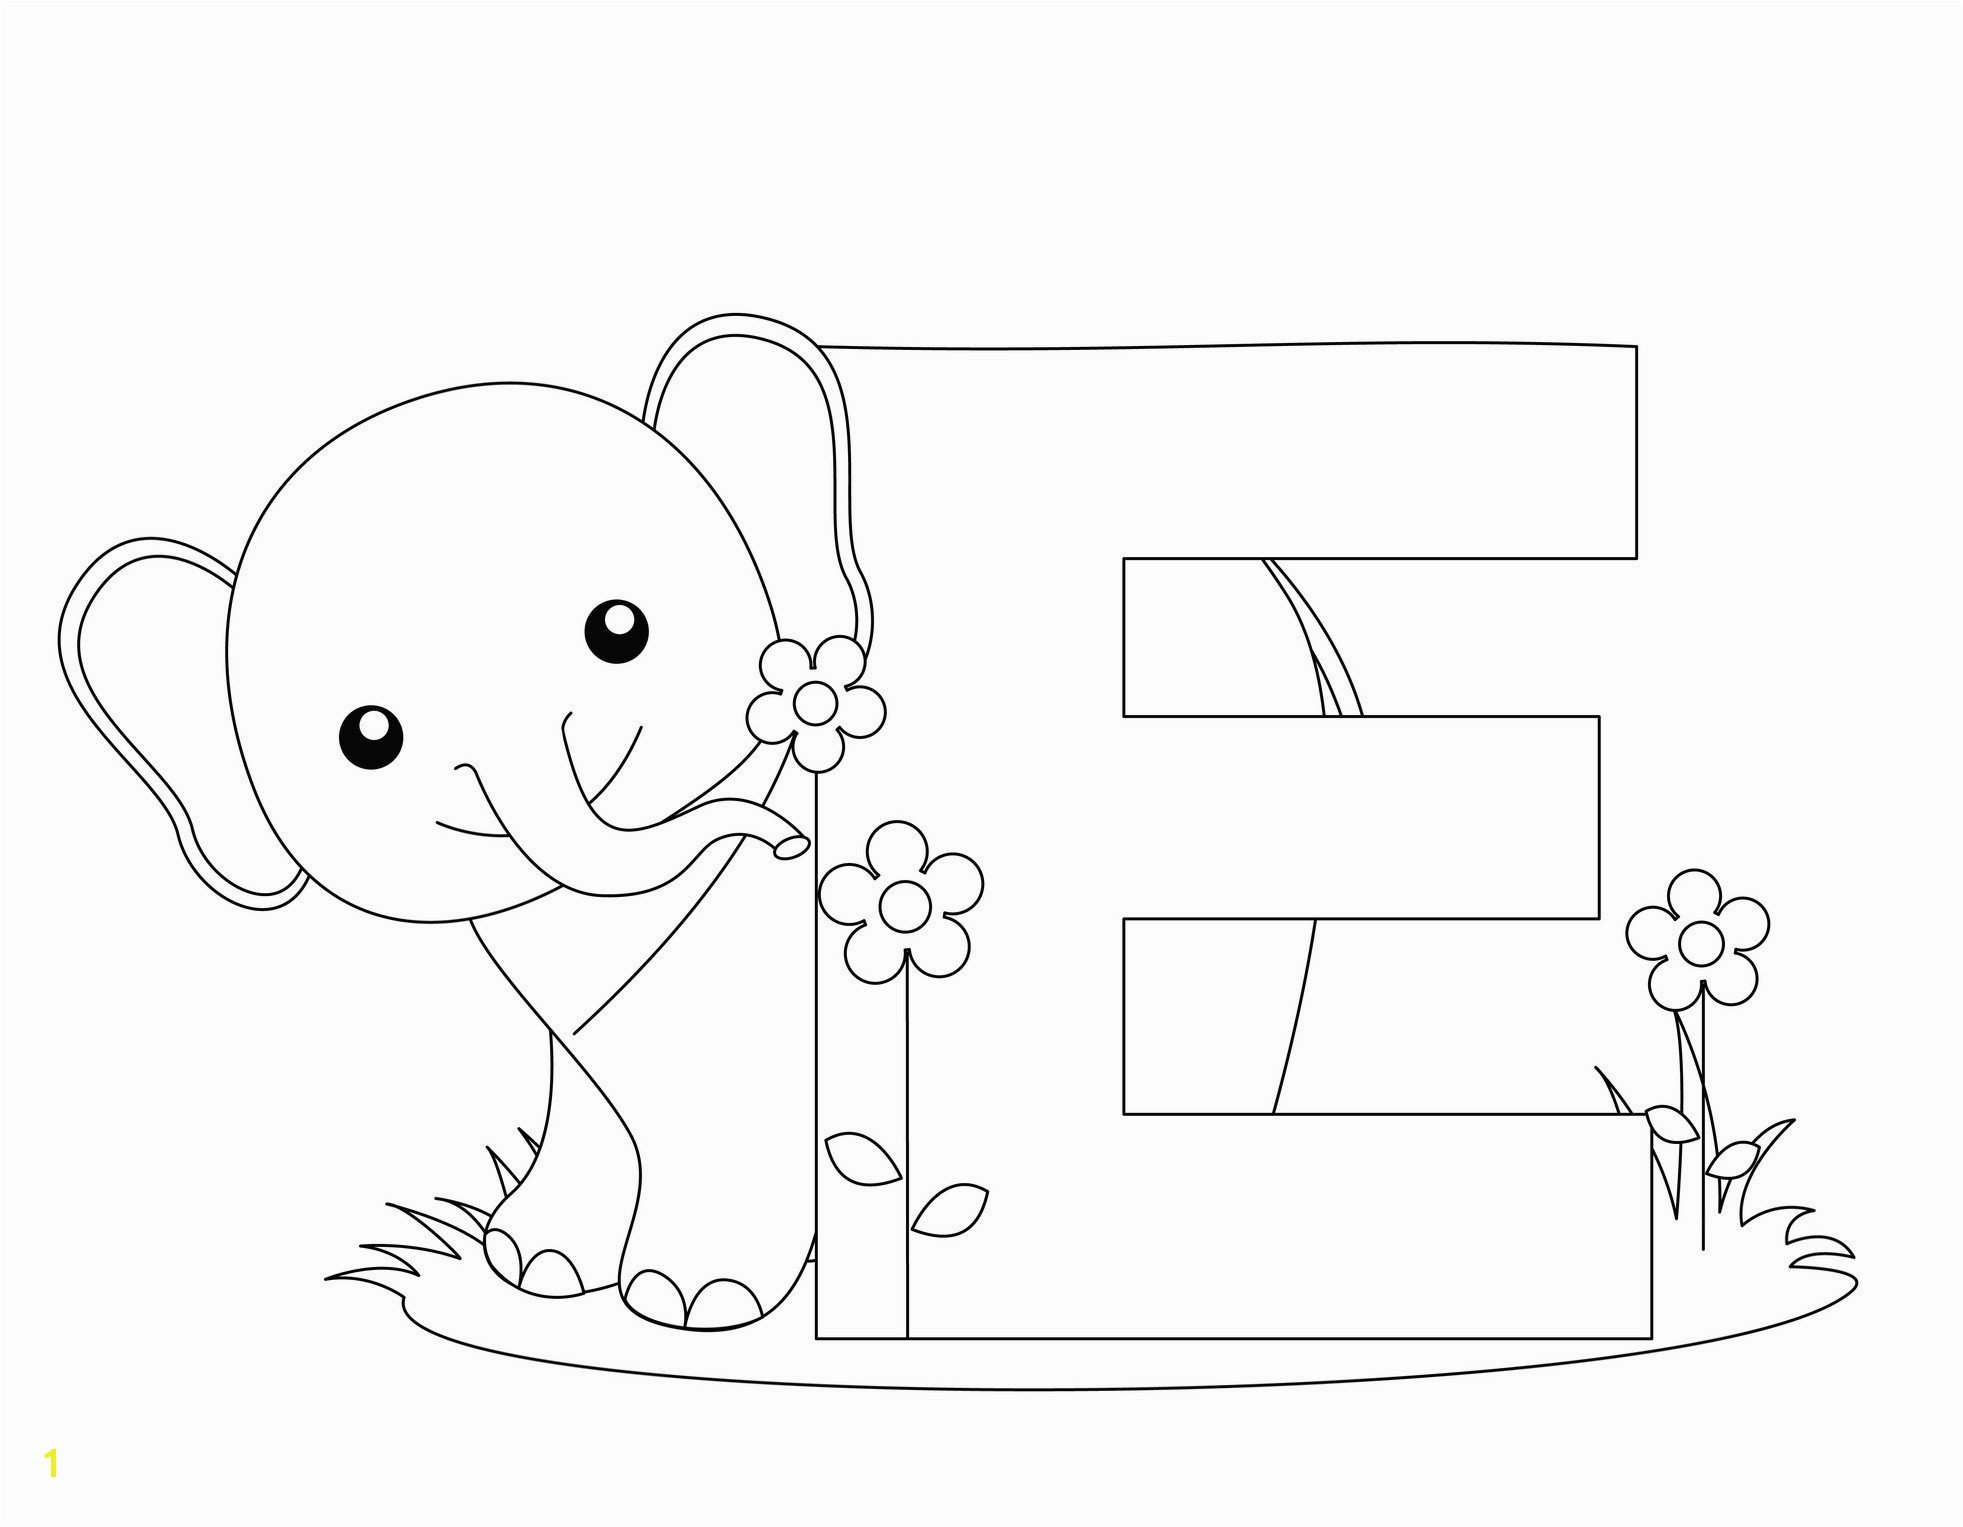 Arabic Alphabet Coloring Pages Pdf 2018 Lowercase Alphabet Coloring Pages Katesgrove